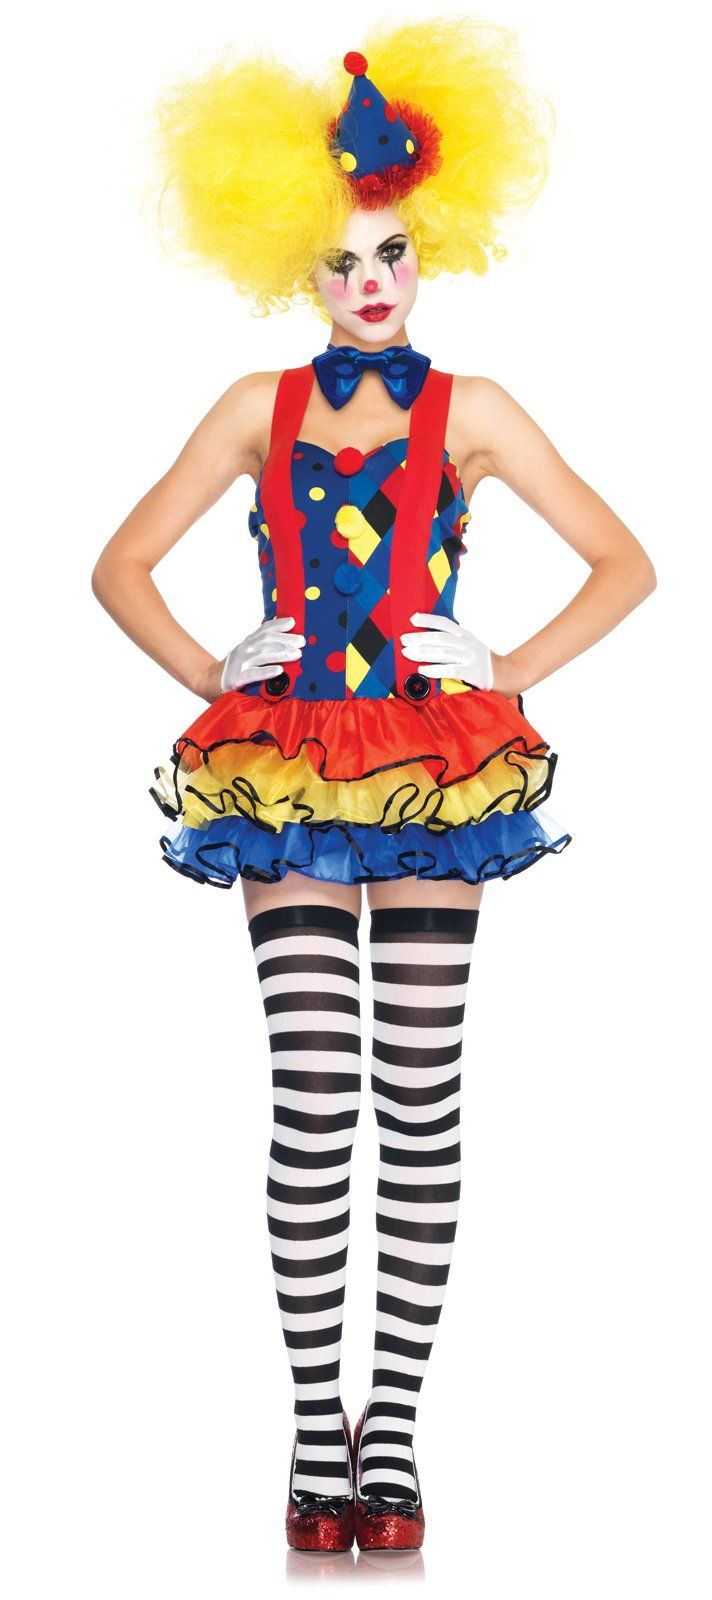 Giggles The Sexy Clown Adult Costume... I hate clowns but Love this costume!